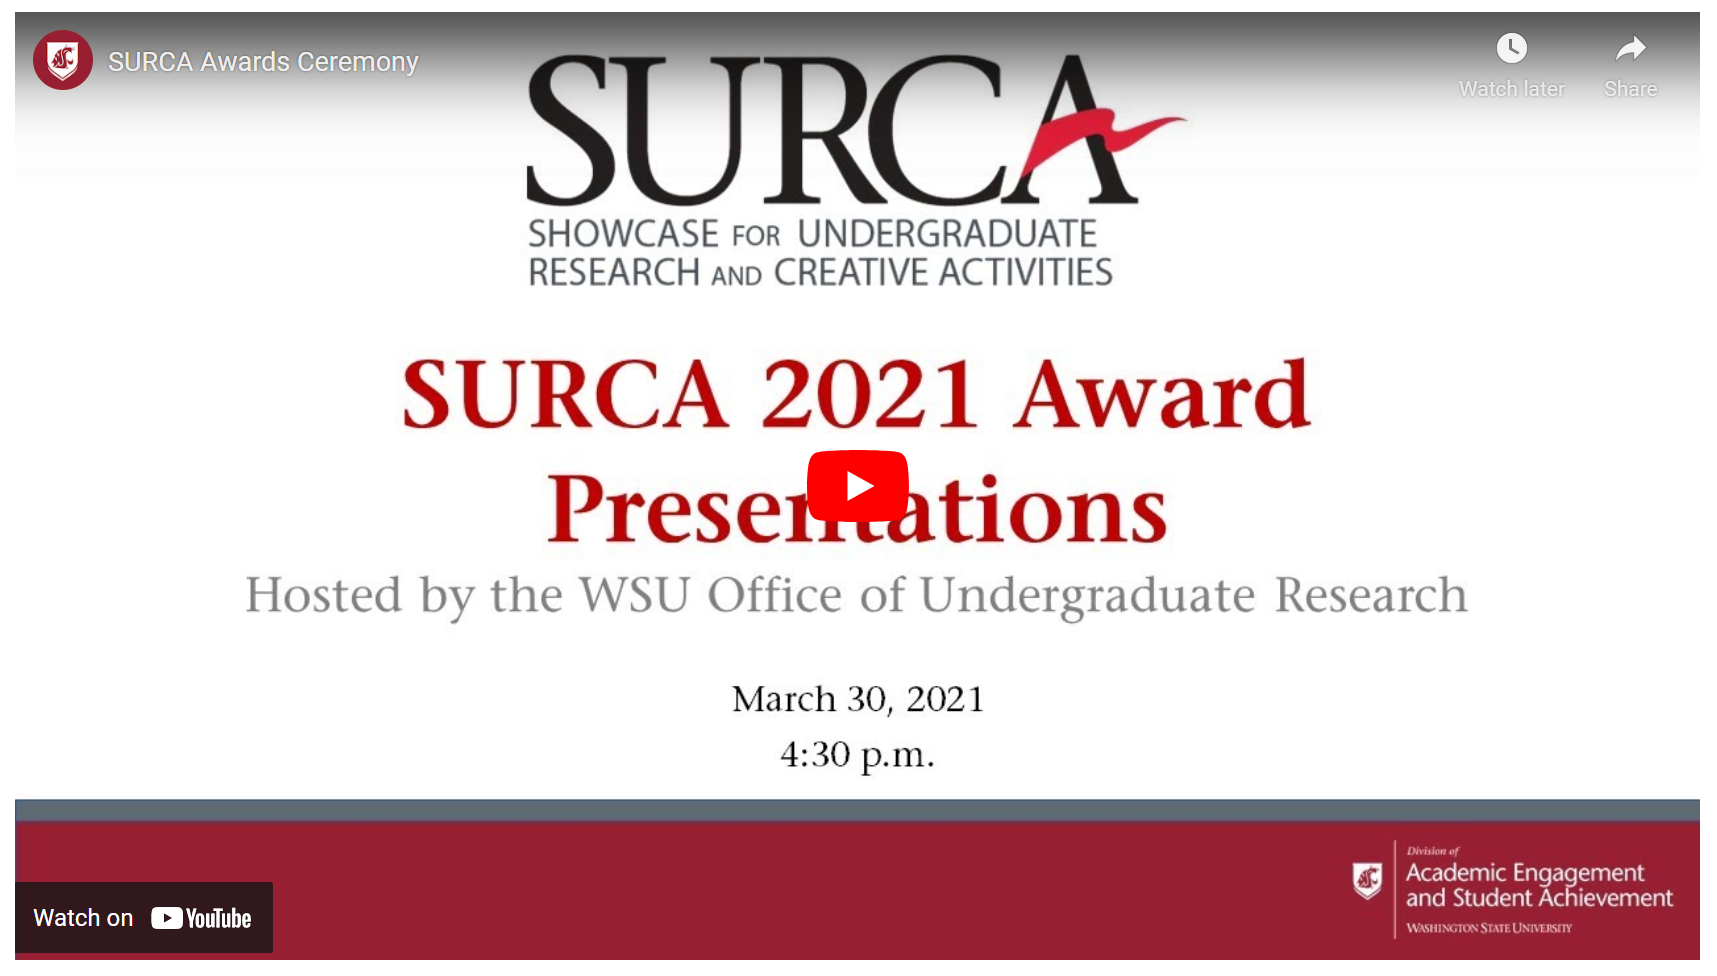 The SURCA 2021 Award Presentations will be on, March 30, 2021, at 4:30 p.m. Visit the link above to watch it on YouTube live.